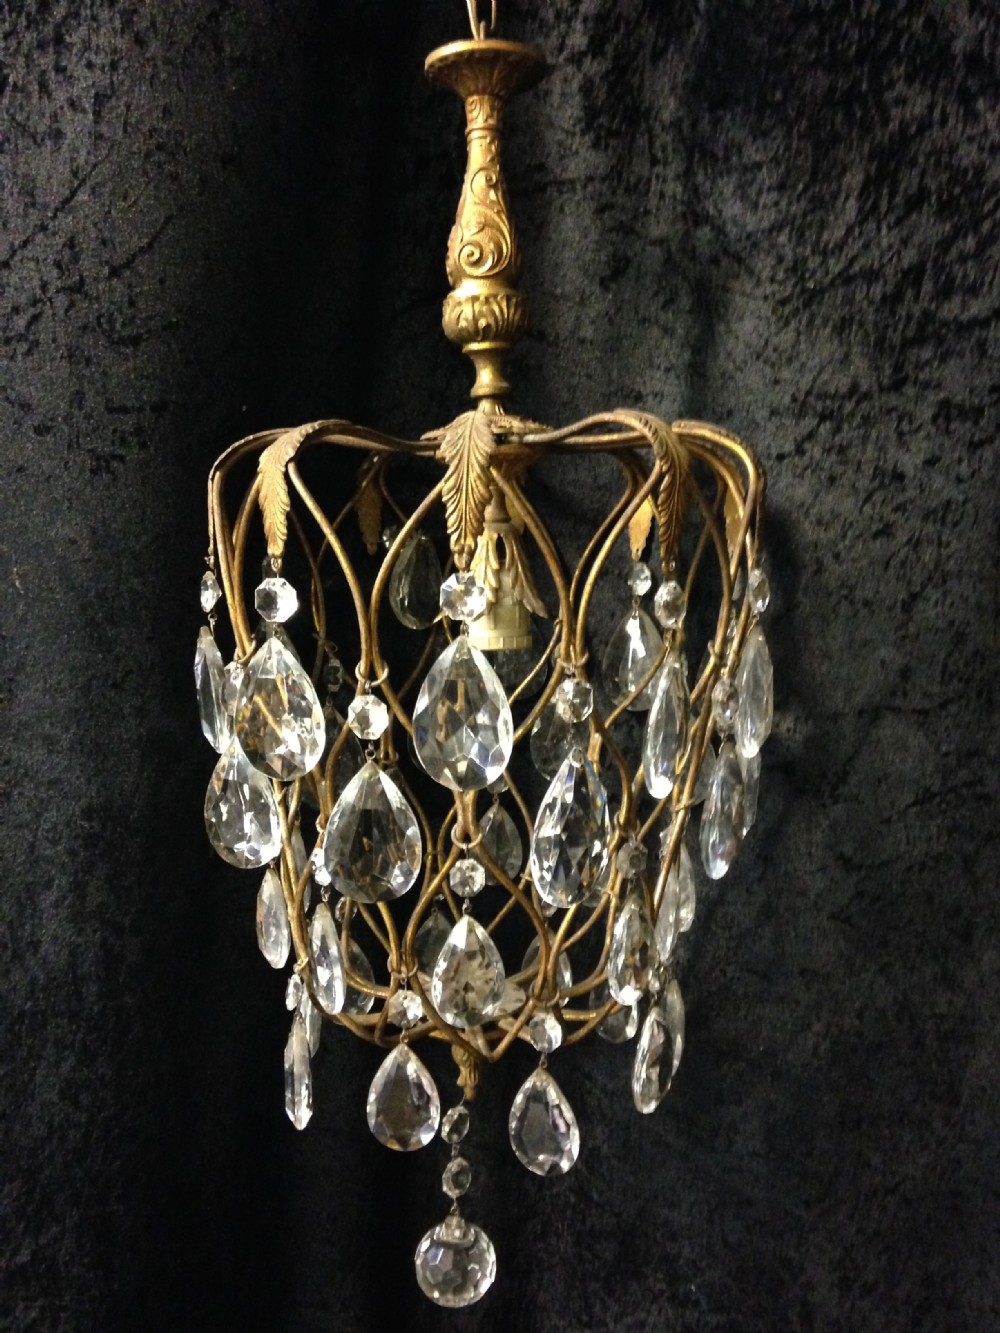 Small Antique Italian Pineapple Chandelier